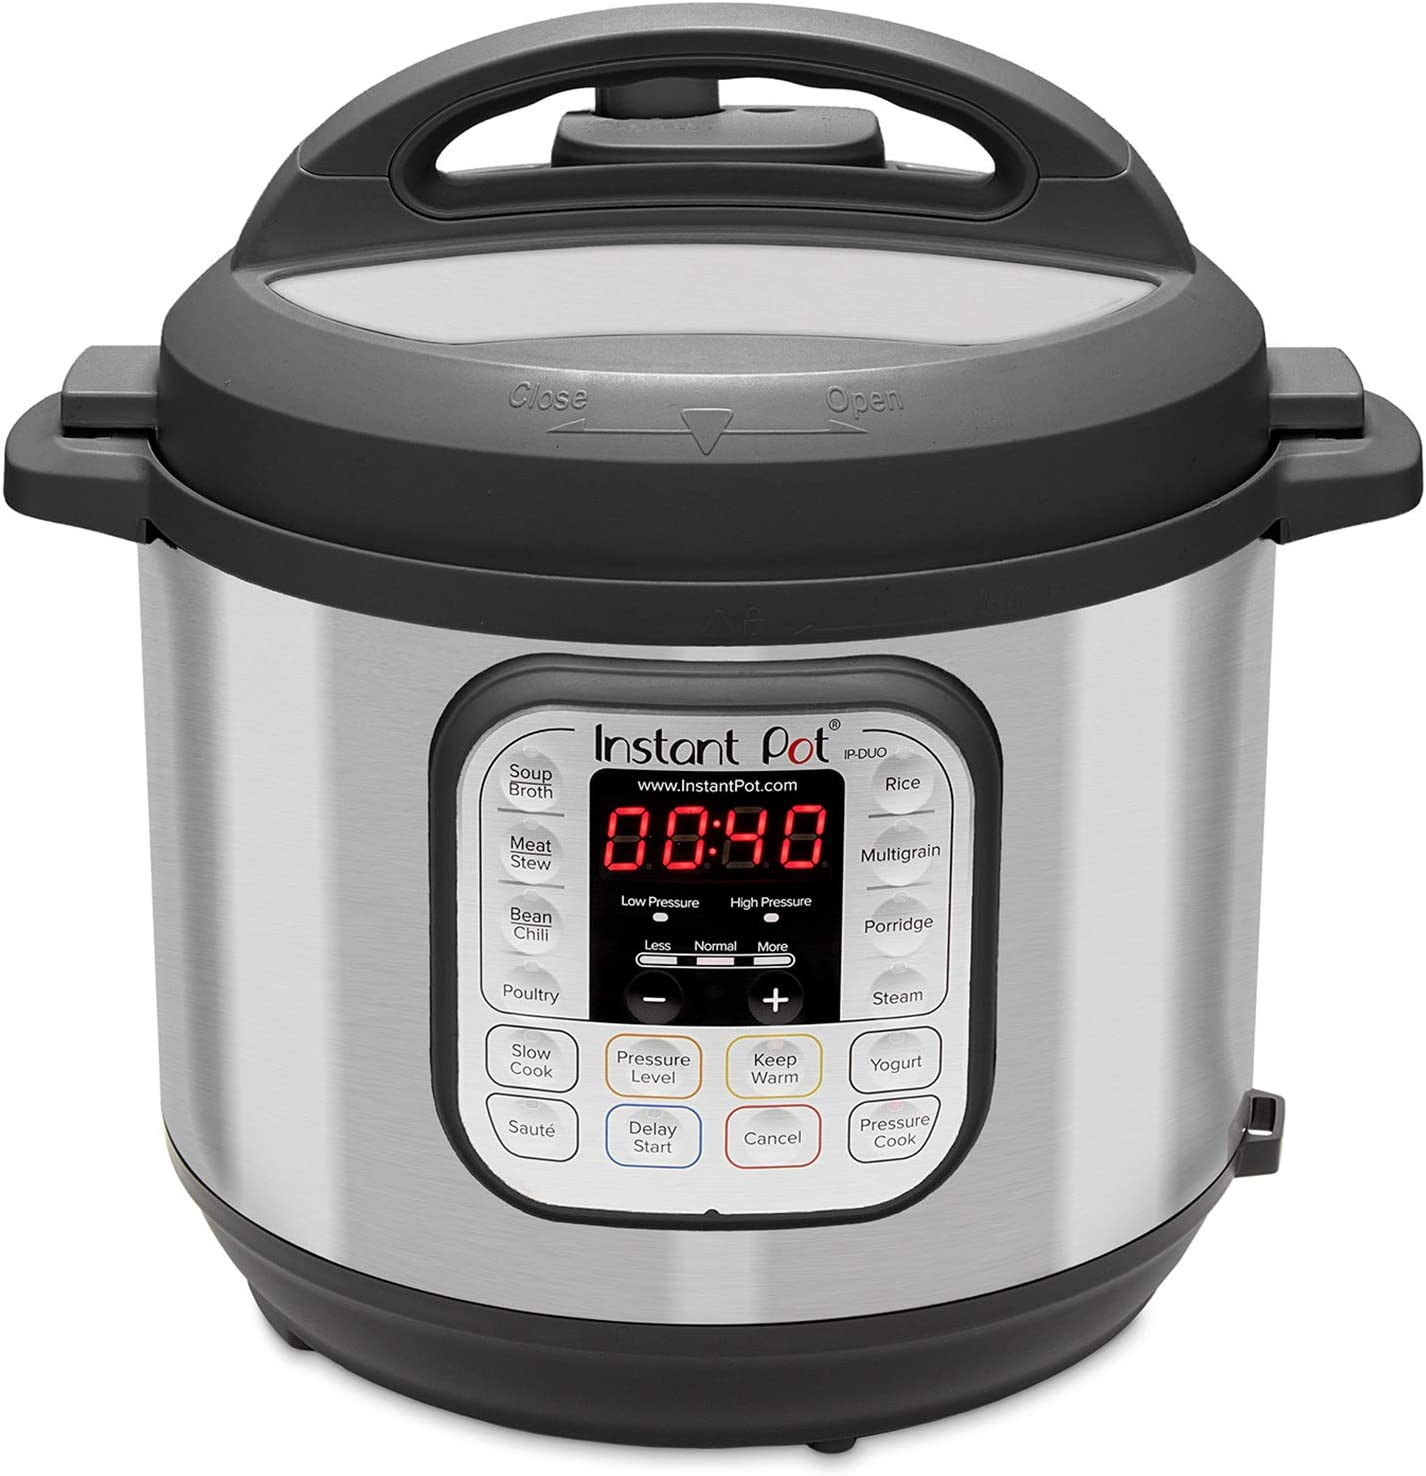 Instant Pot Duo Mini 7-in-1 Electric Pressure Cooker, Slow Cooker, Rice Cooker, Steamer, Saute, Yogurt Maker, and Warmer, 3 Quart, 11 One-Touch Programs